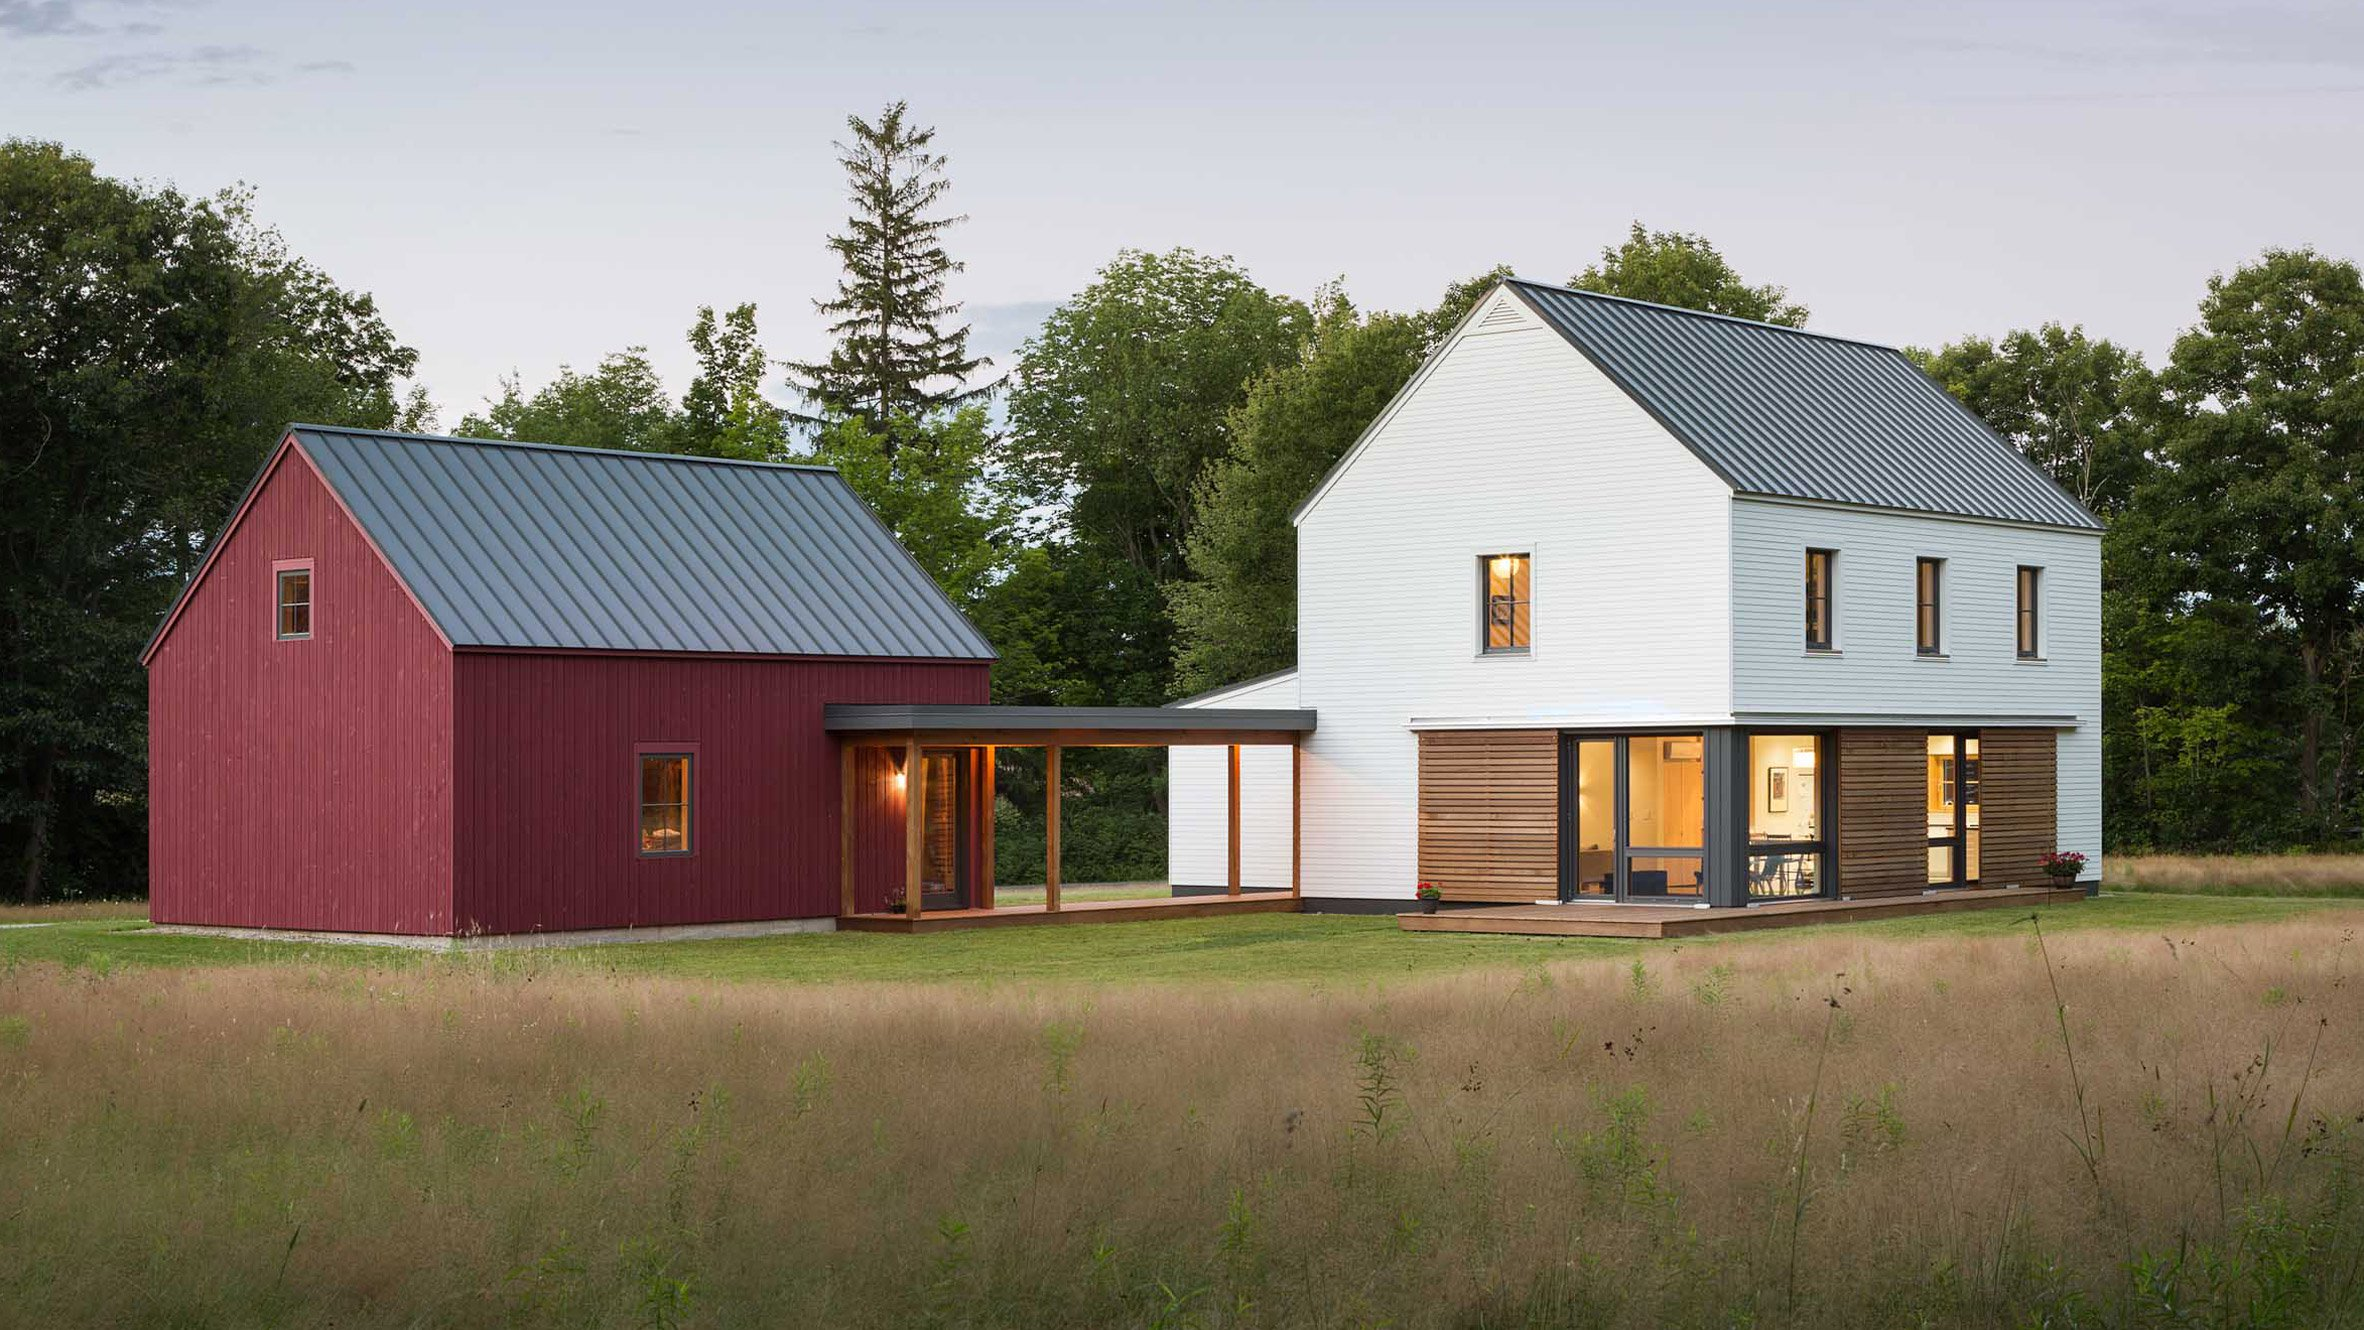 New line of prefab homes offer traditional styles with a modern twist